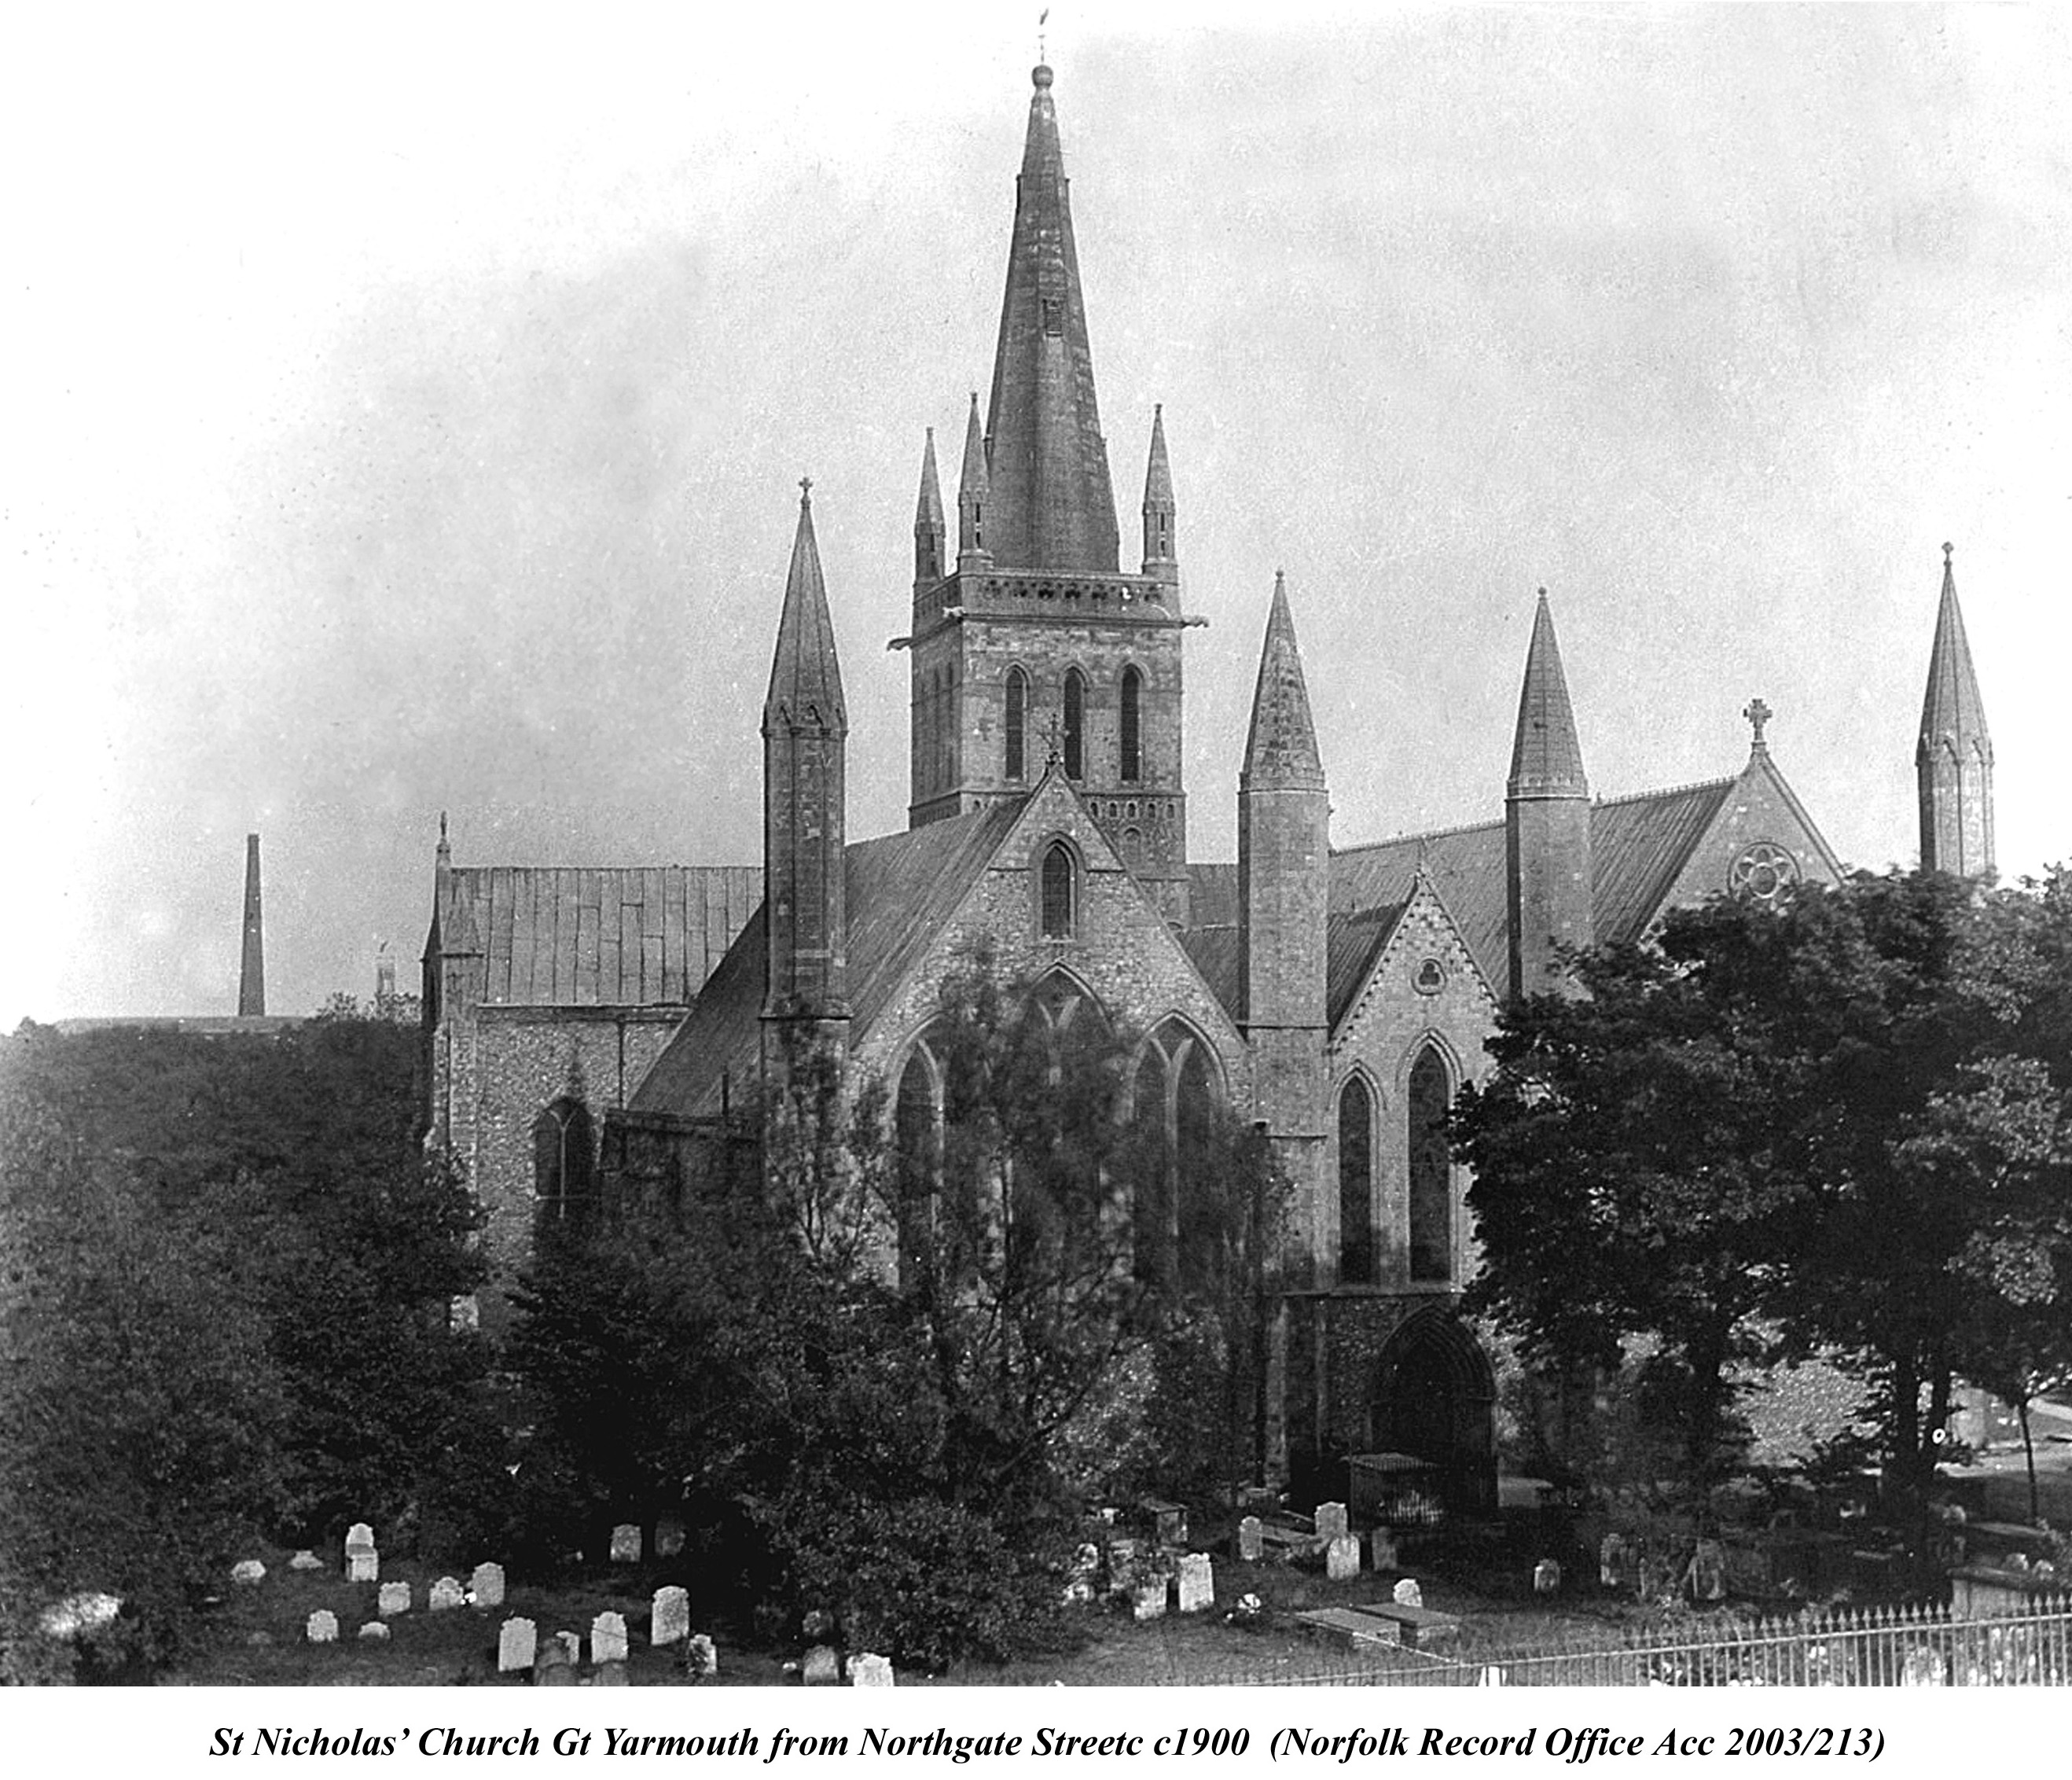 St Nicholas Church 1900